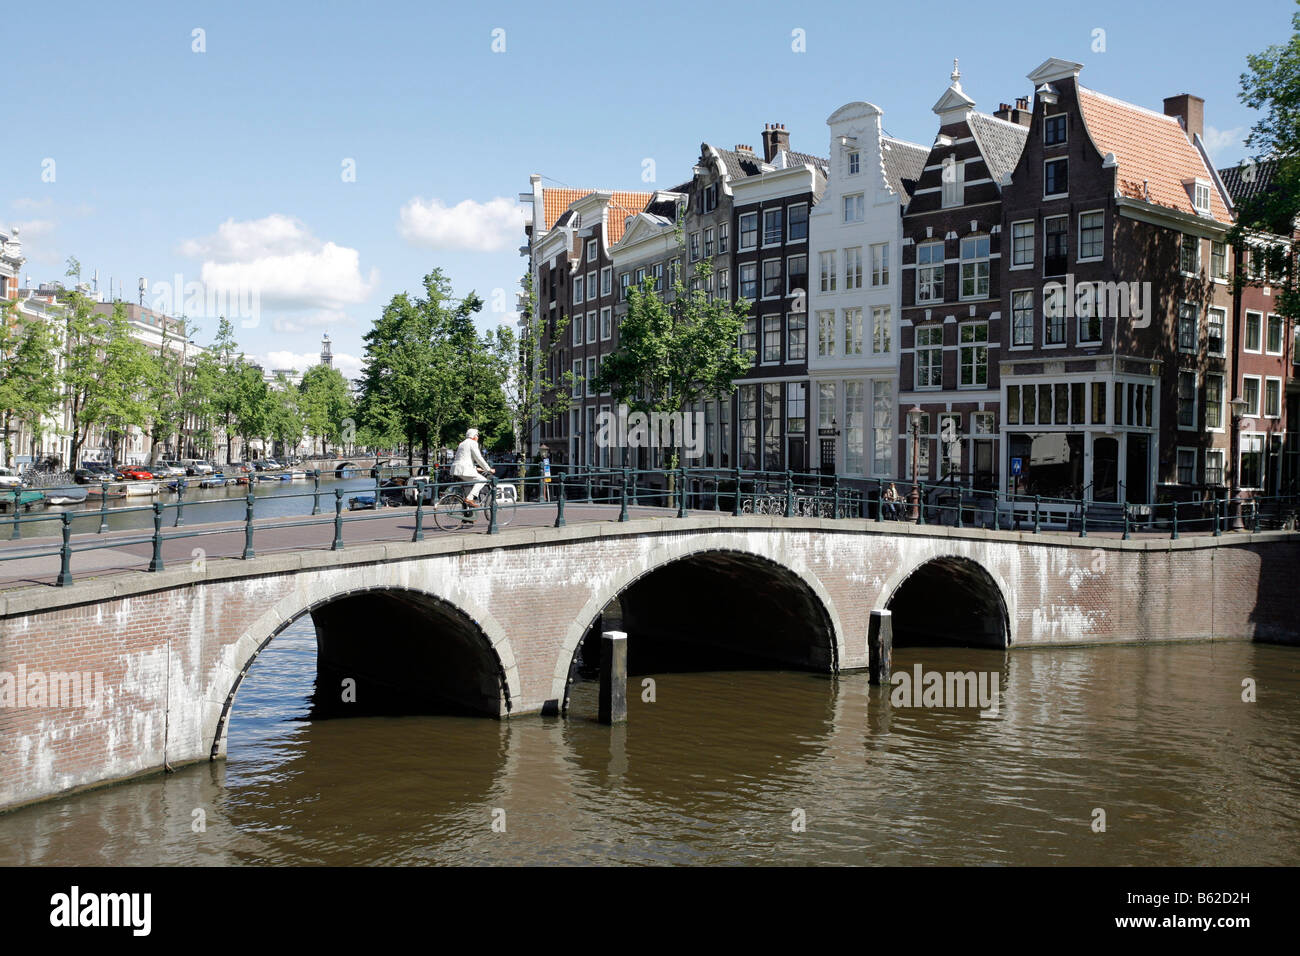 Bridge and canal houses, Leidse Ecke Prinsengracht, Amsterdam, Netherlands, Europe - Stock Image